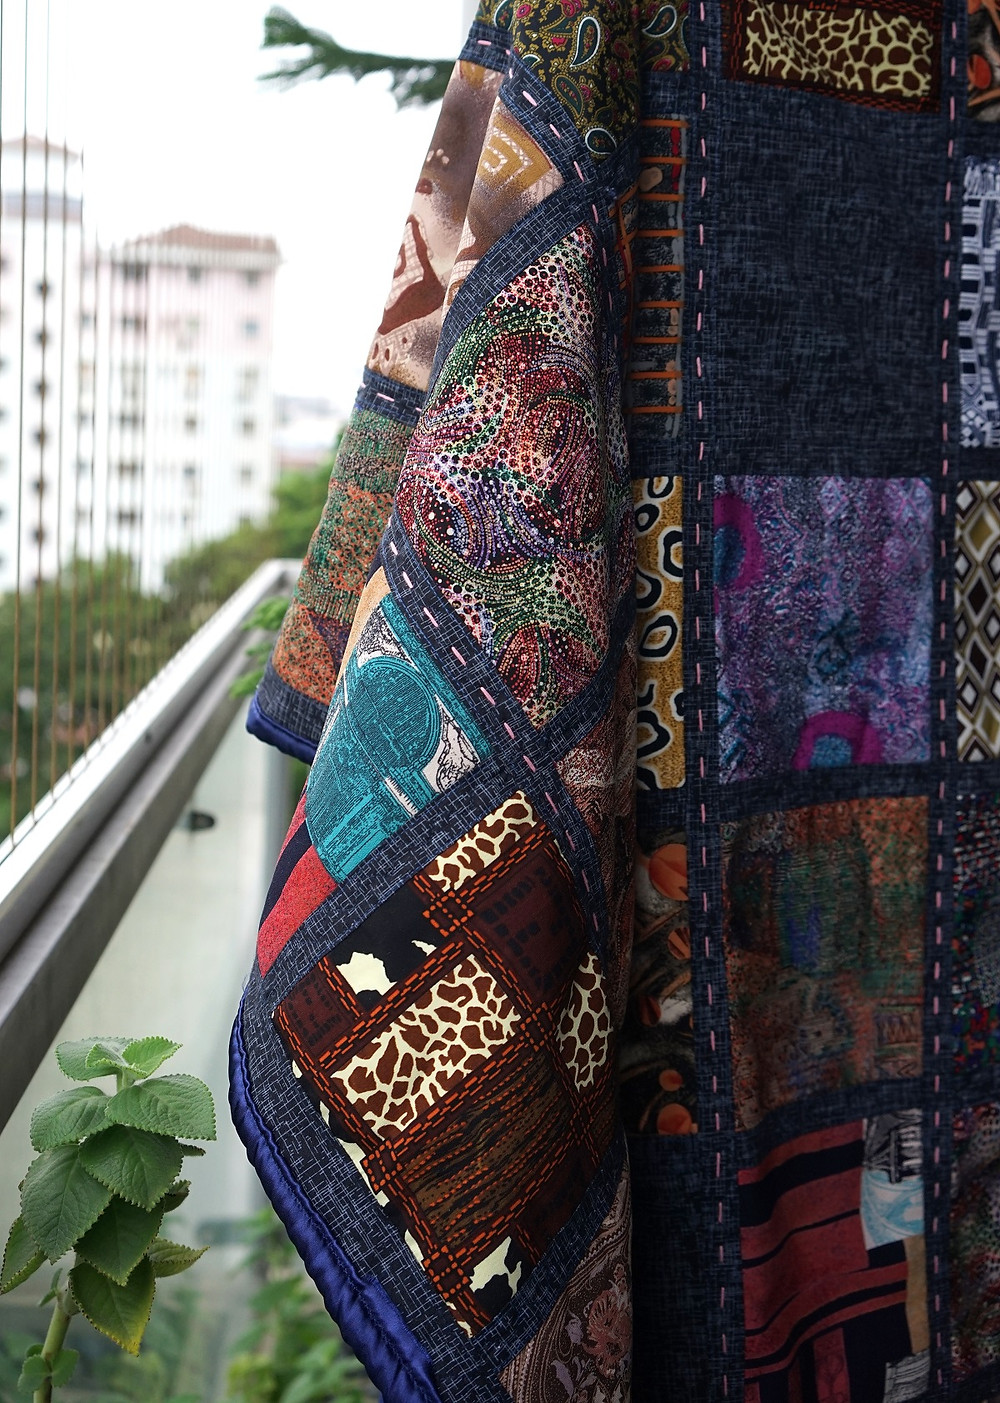 memory square patchwork quilt hang on rack outdoor